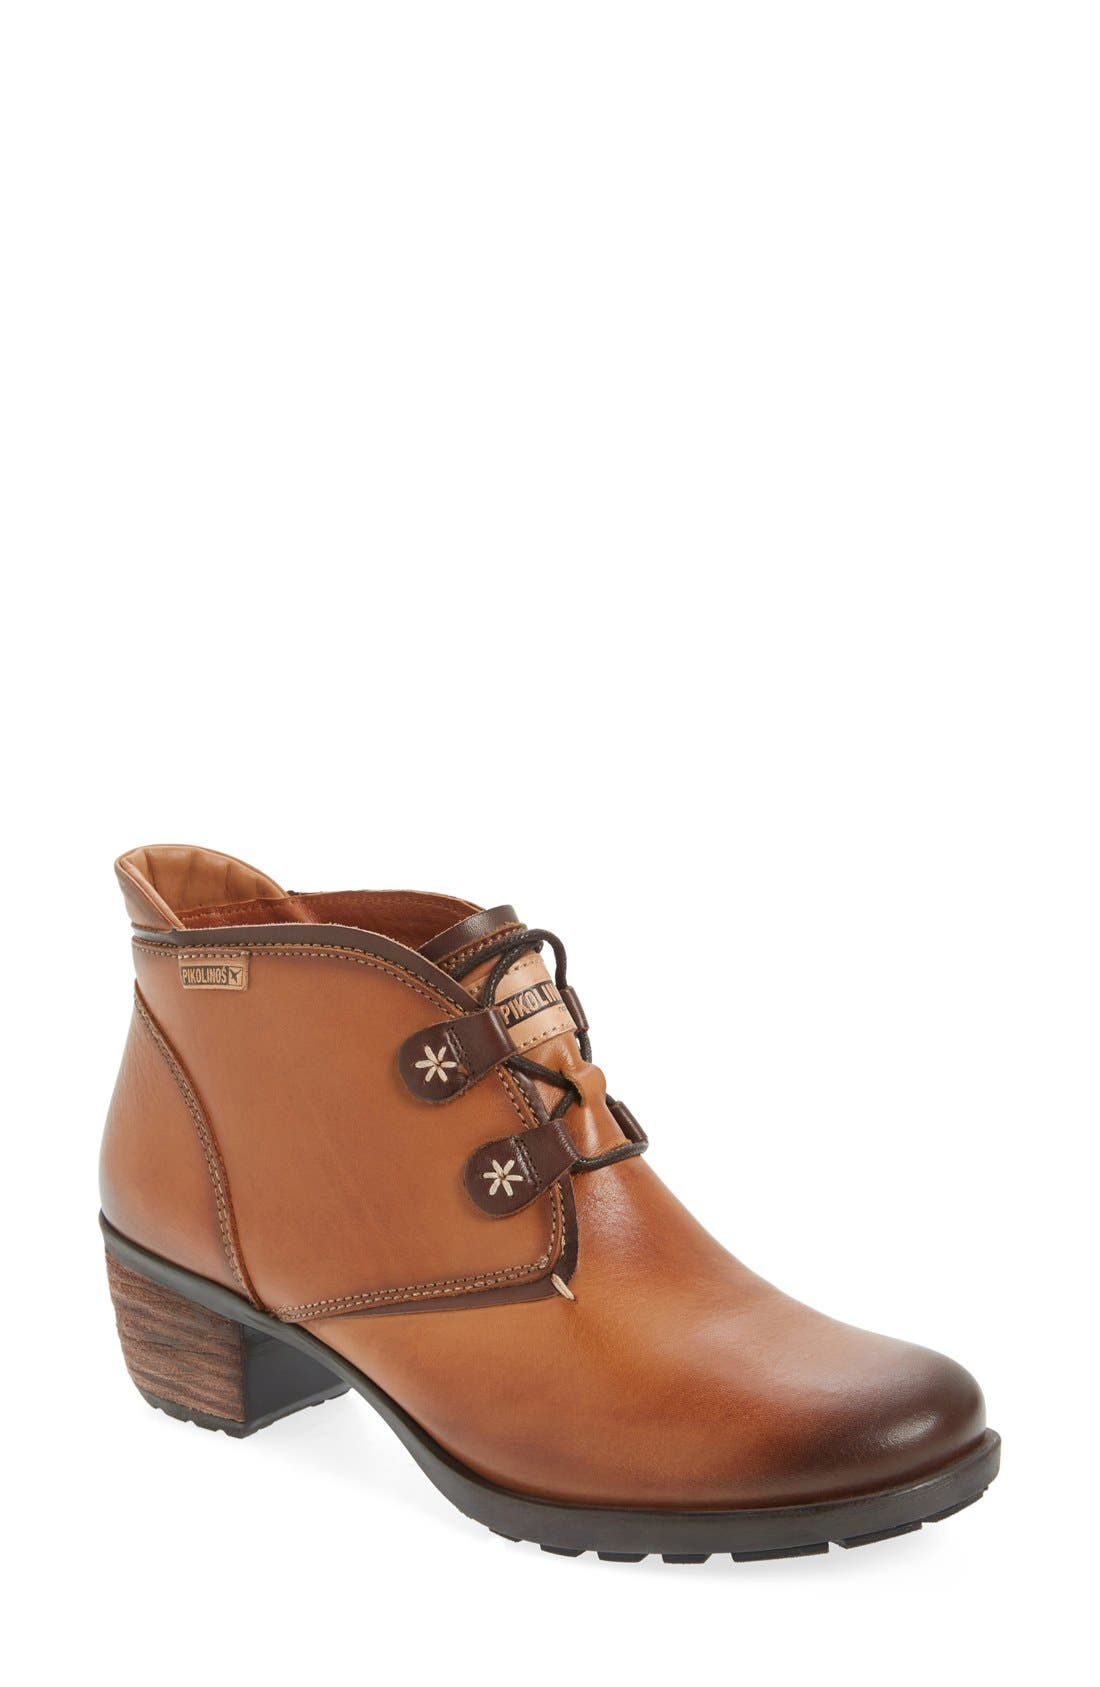 'Le Mans' Stack Heel Bootie,                         Main,                         color, 220